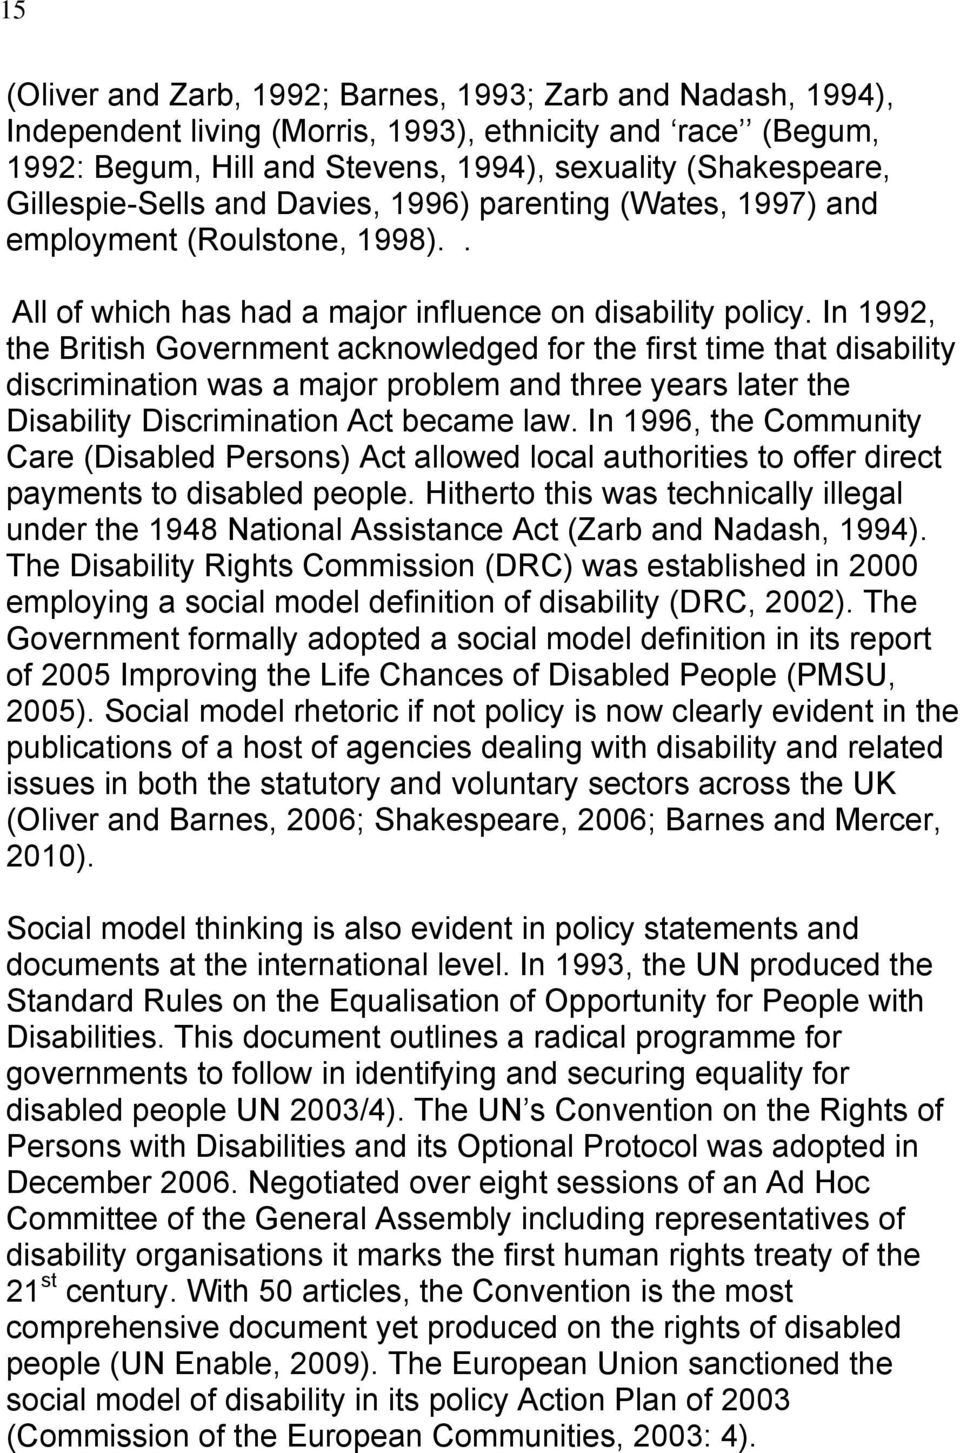 In 1992, the British Government acknowledged for the first time that disability discrimination was a major problem and three years later the Disability Discrimination Act became law.